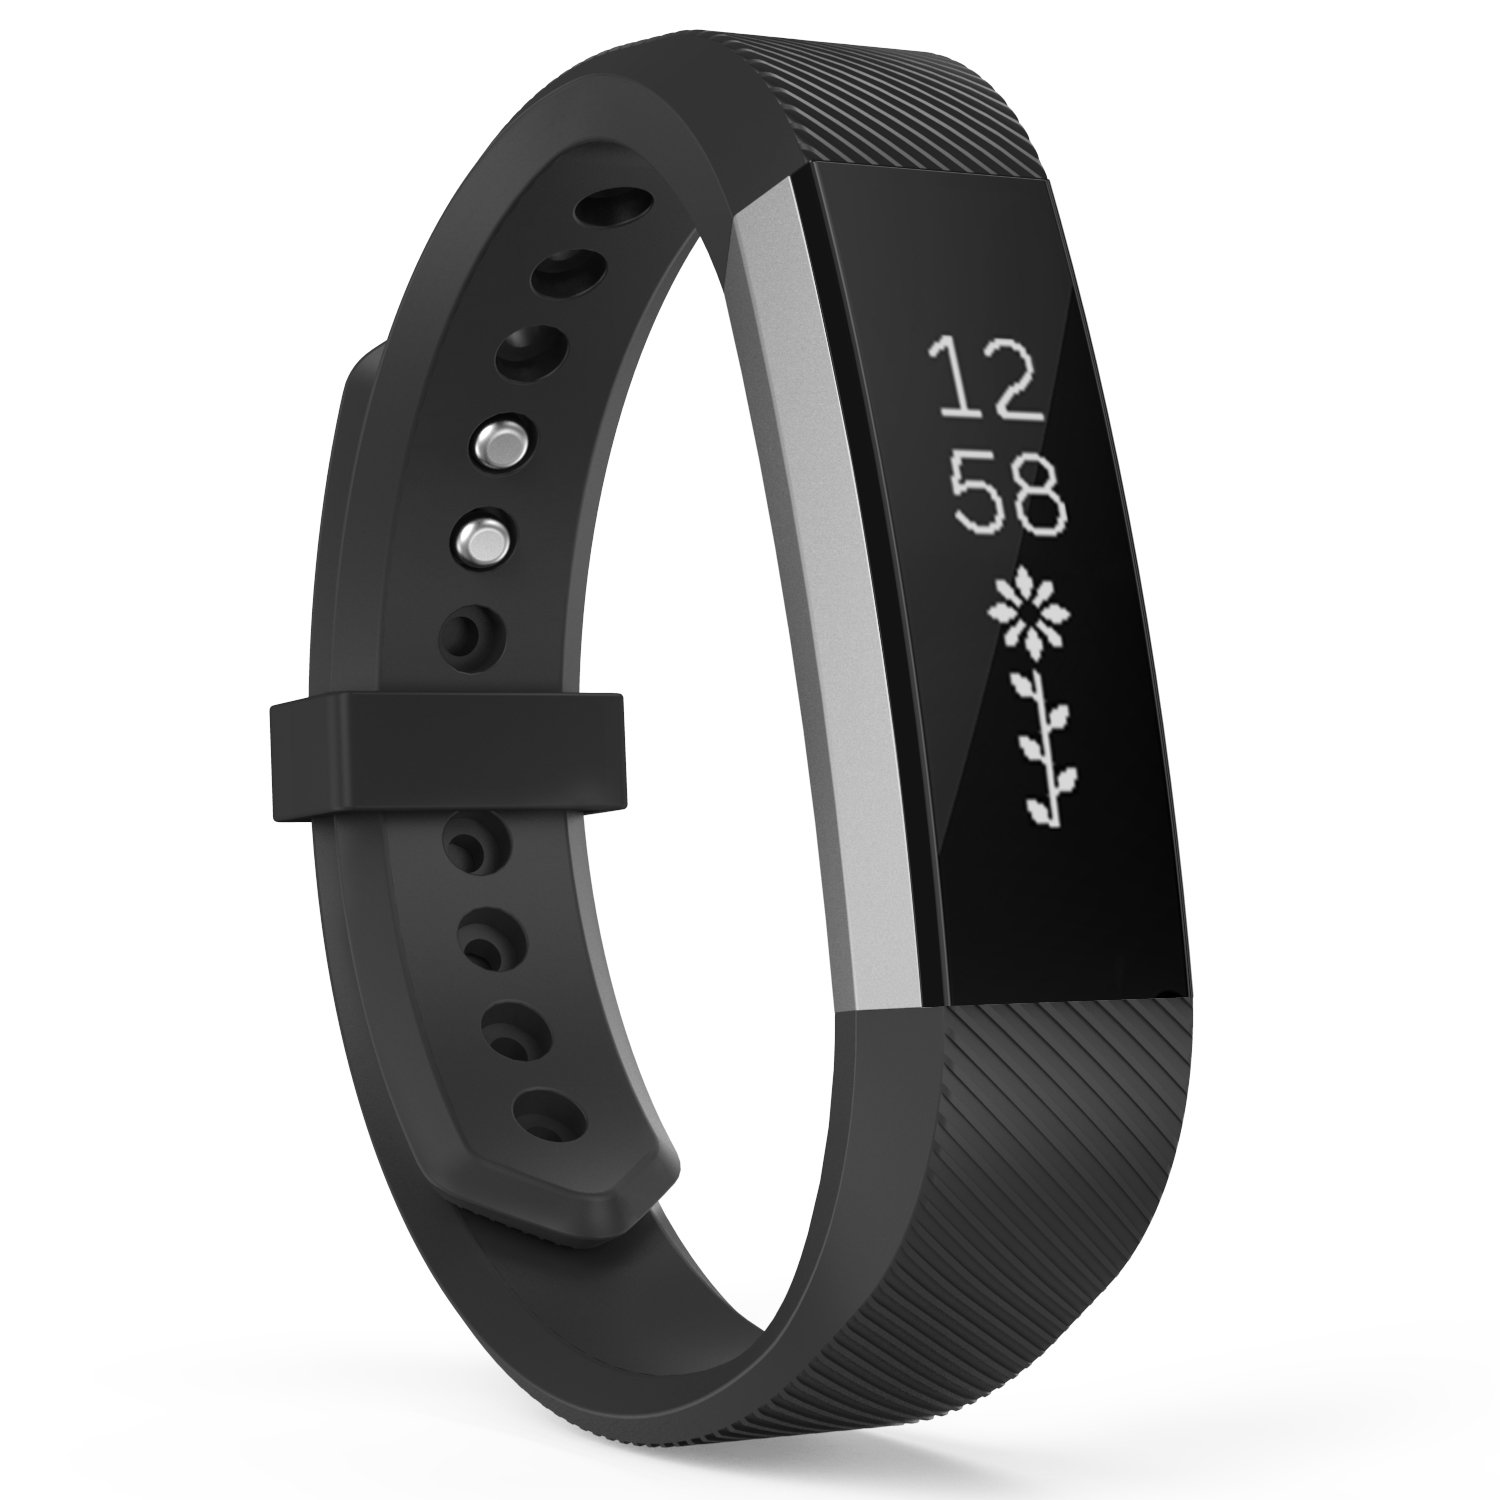 Cheap Fitbit Fitness Tracker Find Deals On Alta Hr Smartwatch Small Black Stainless Steel Get Quotations Moko And Band Classic Replacement Soft Wristband Strap With Metal Clasp